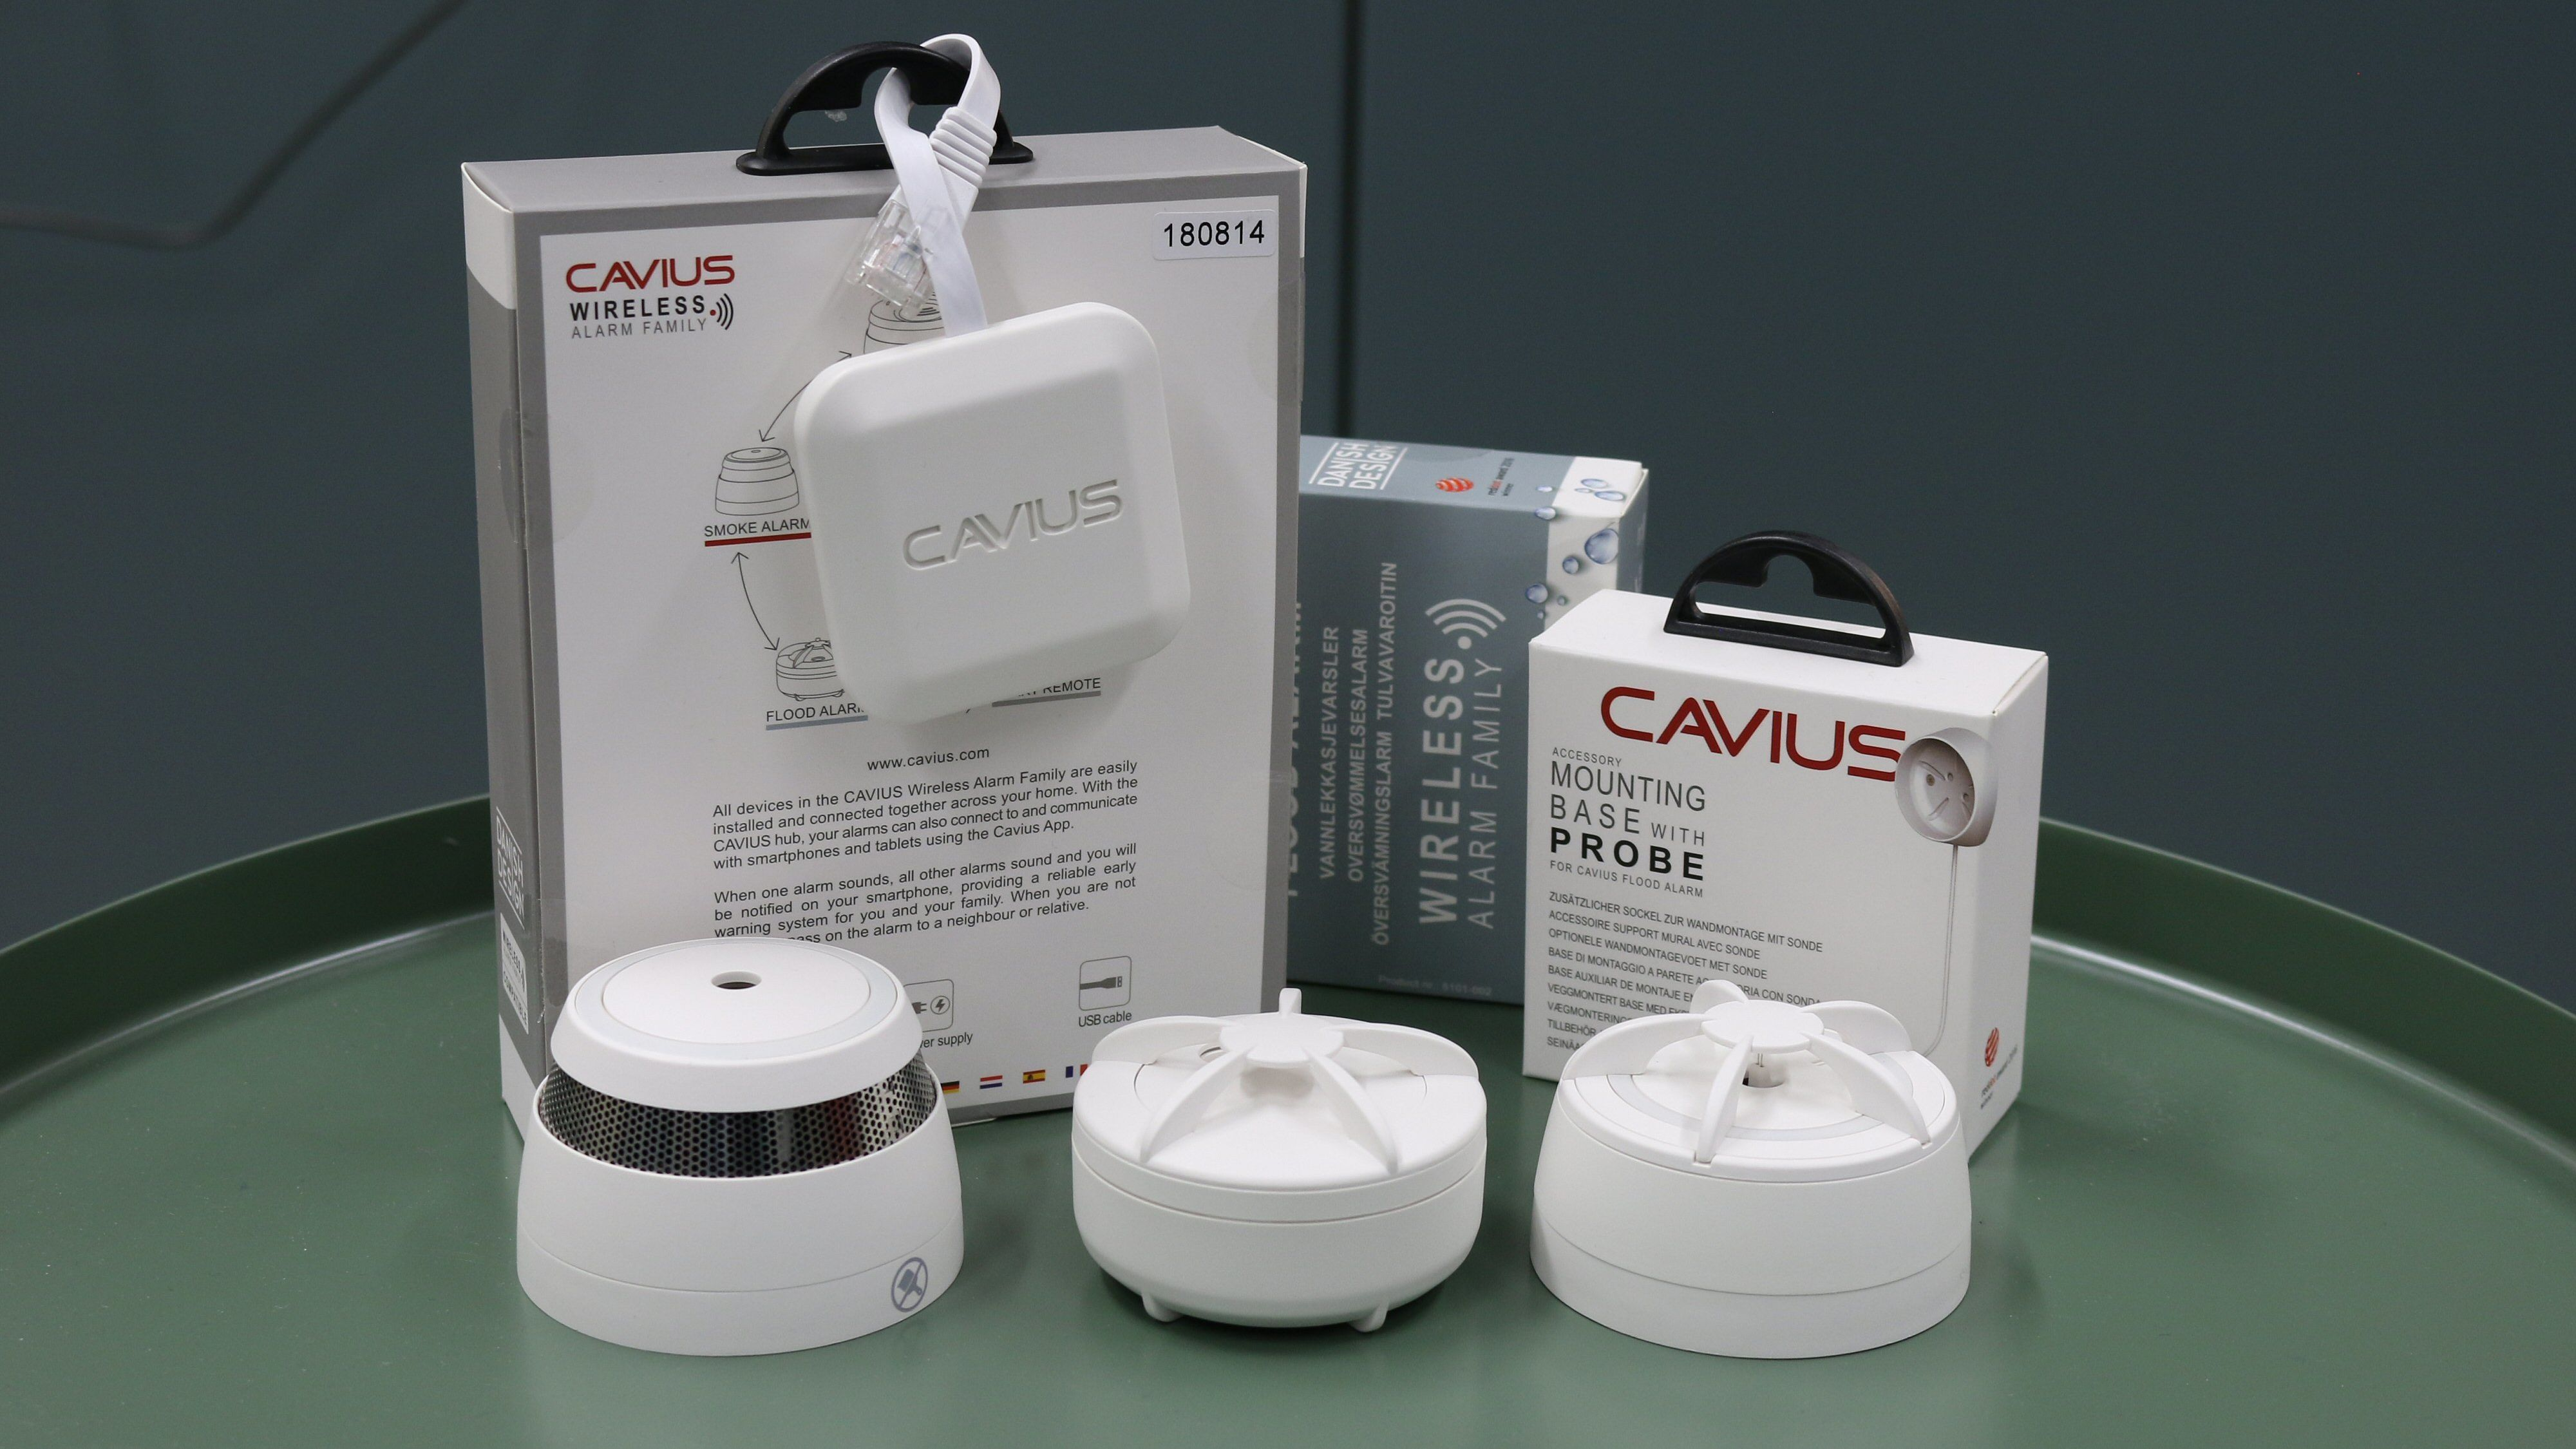 Cavius Wireless Alarm Family / Hub